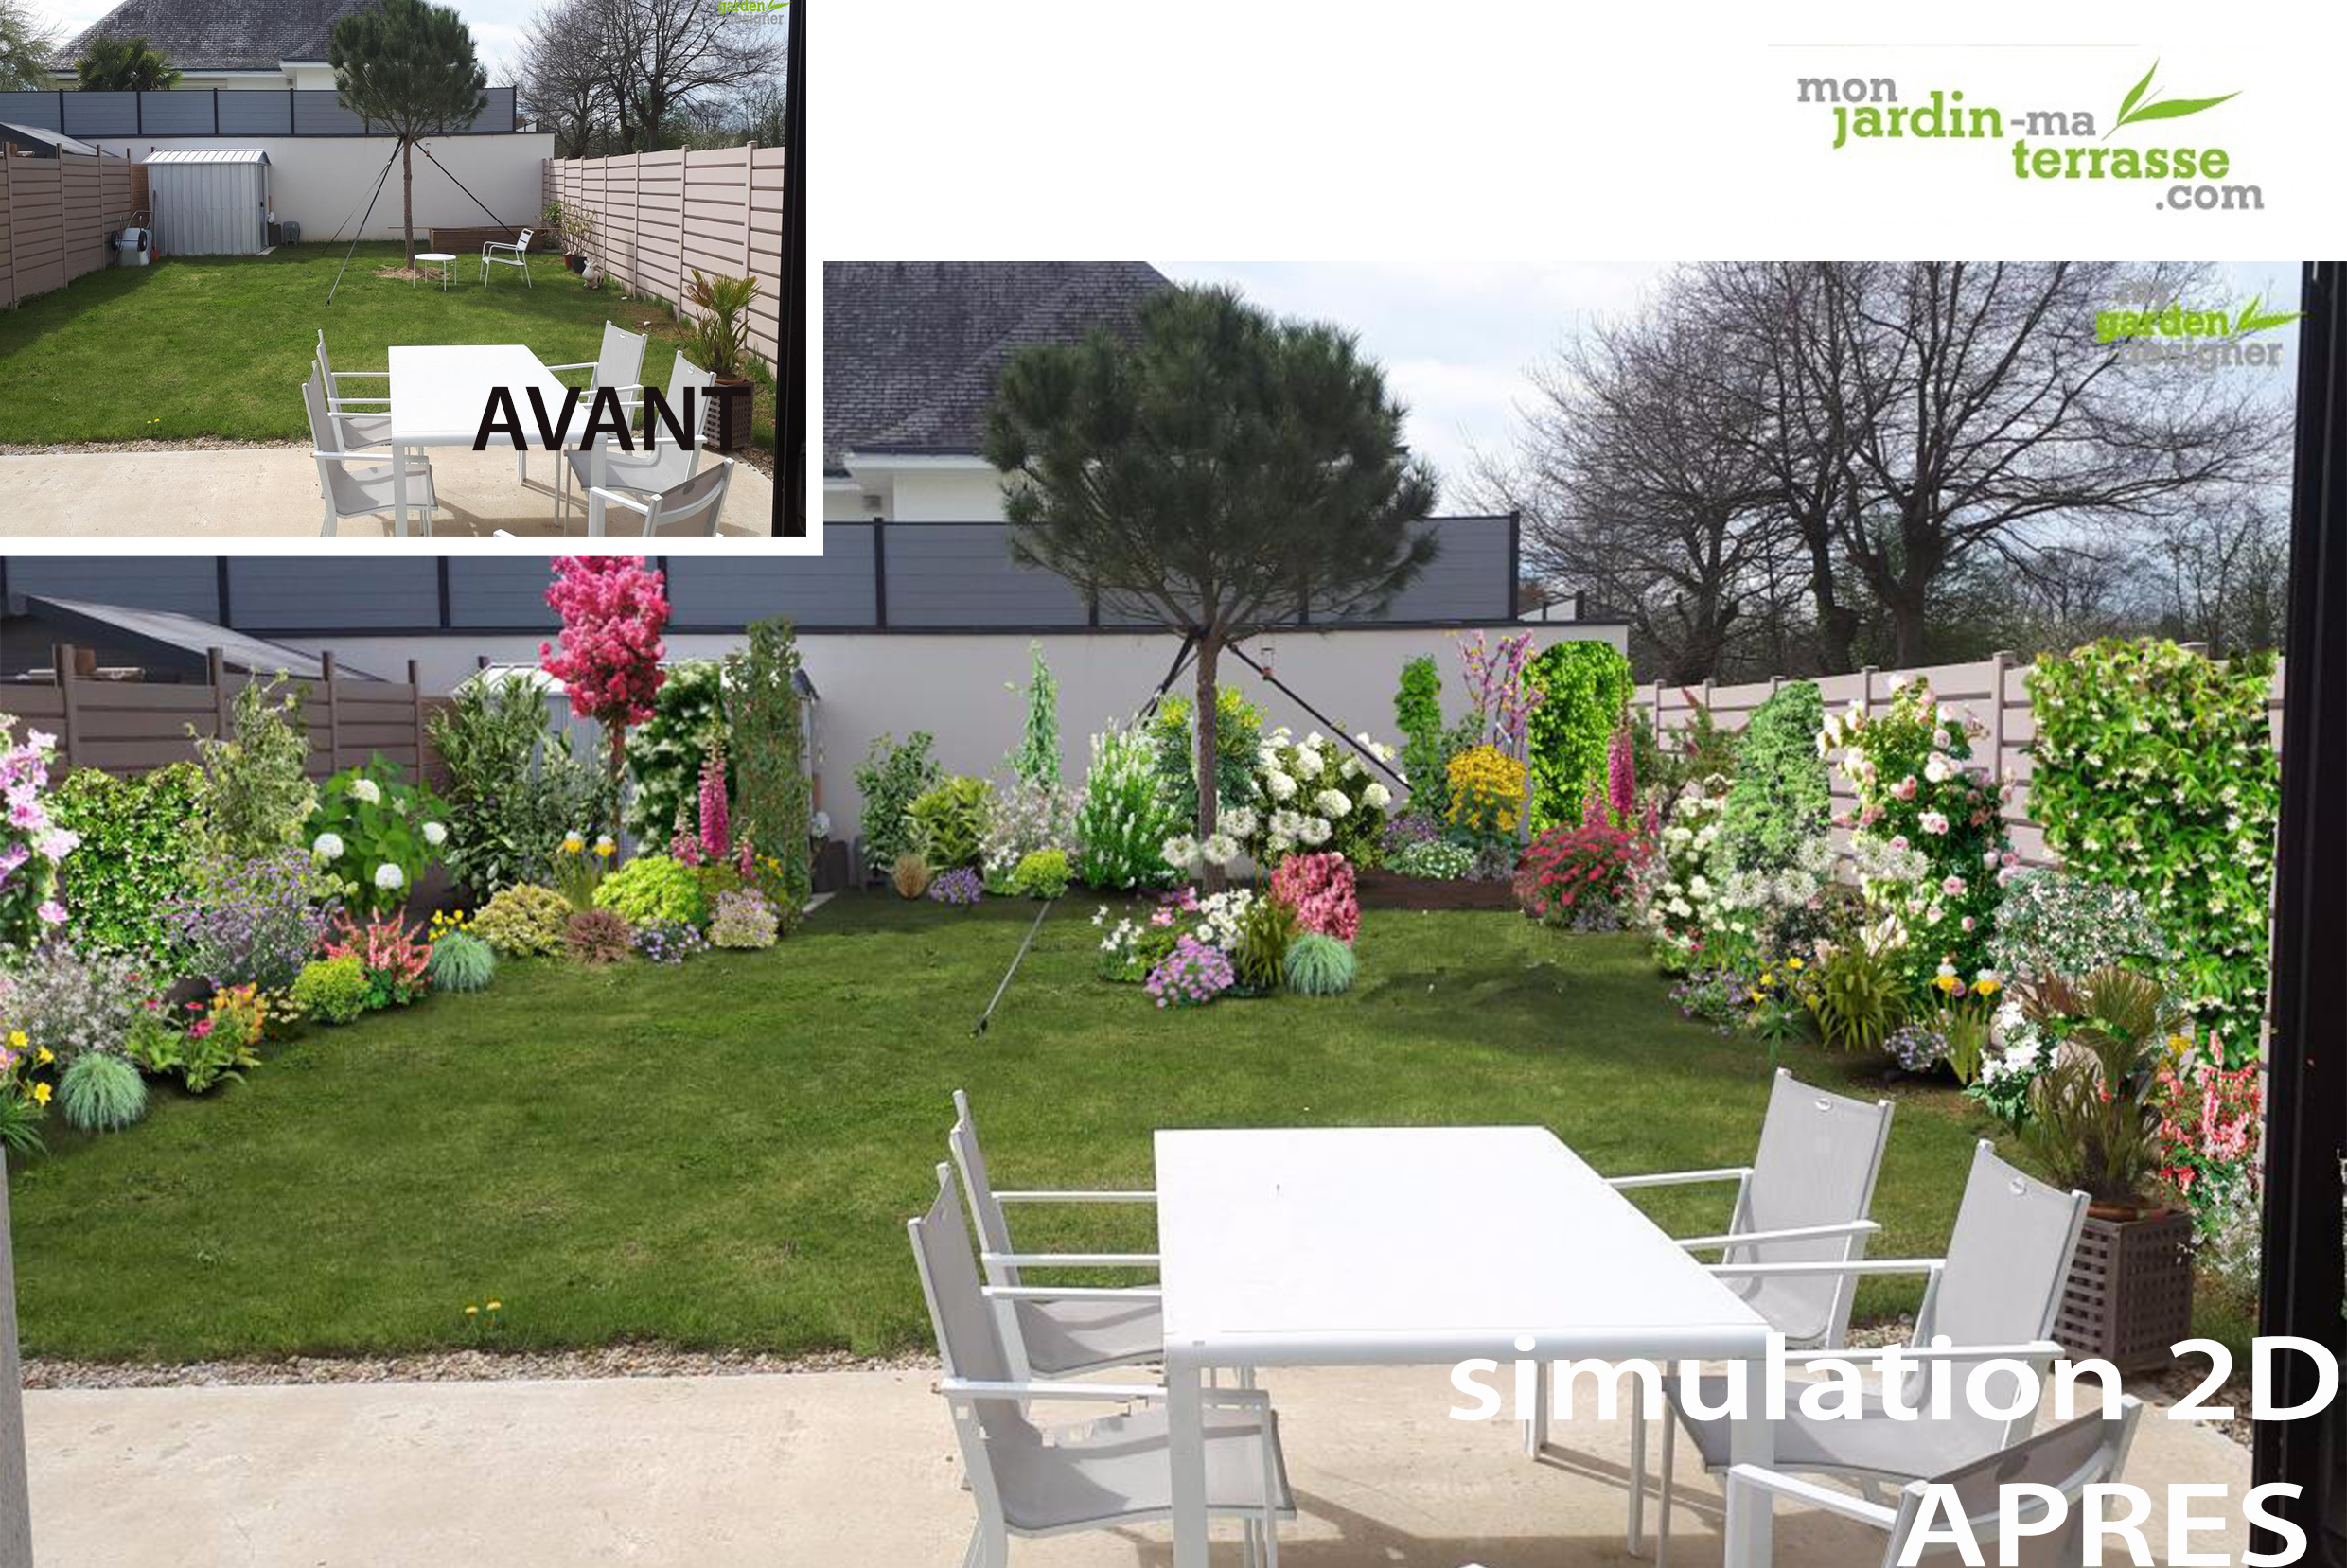 Comment am nager un petit jardin rectangulaire monjardin for Amenagement des jardins